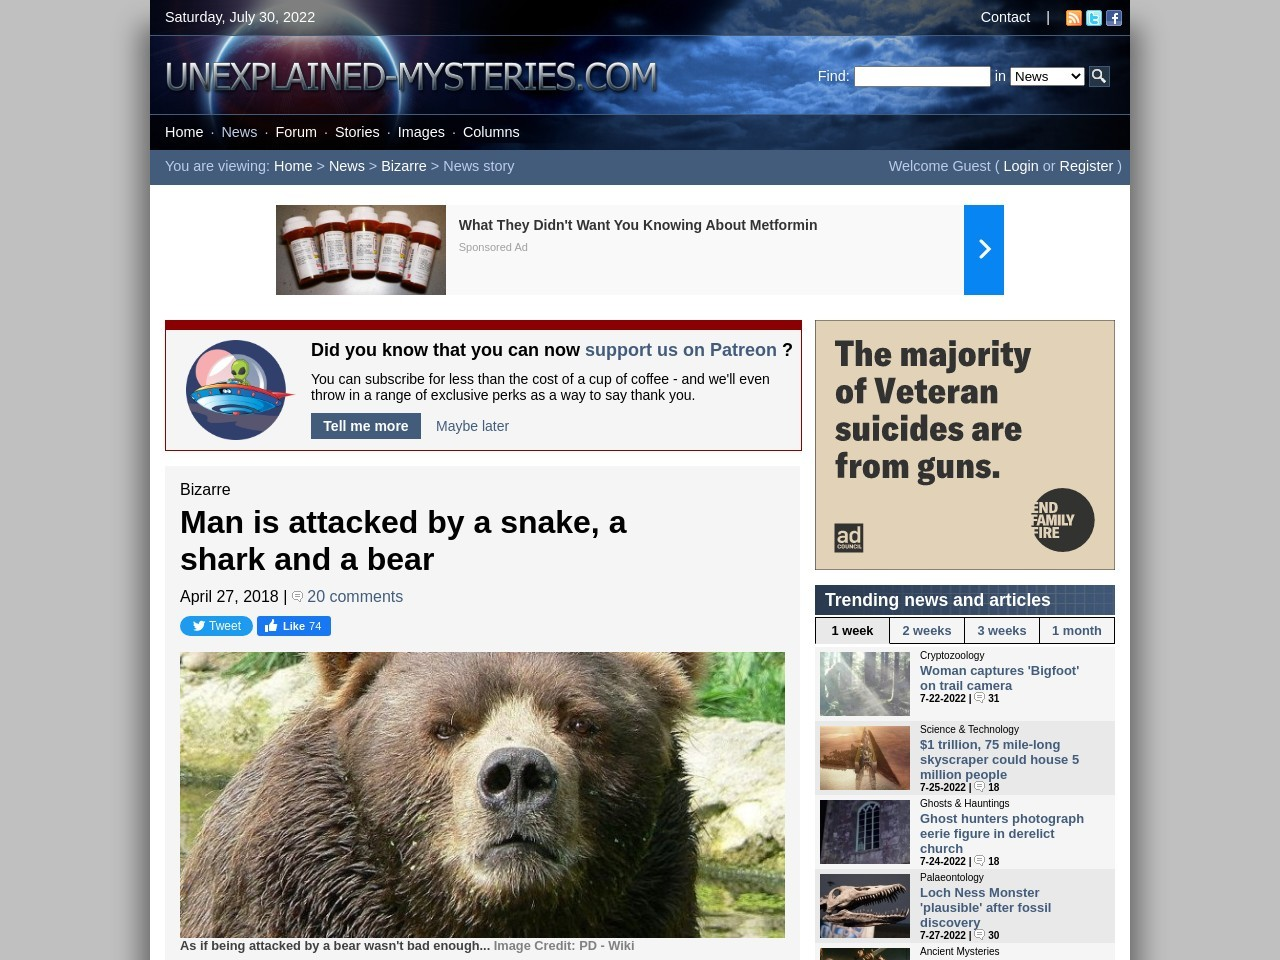 Man is attacked by a snake, a shark and a bear